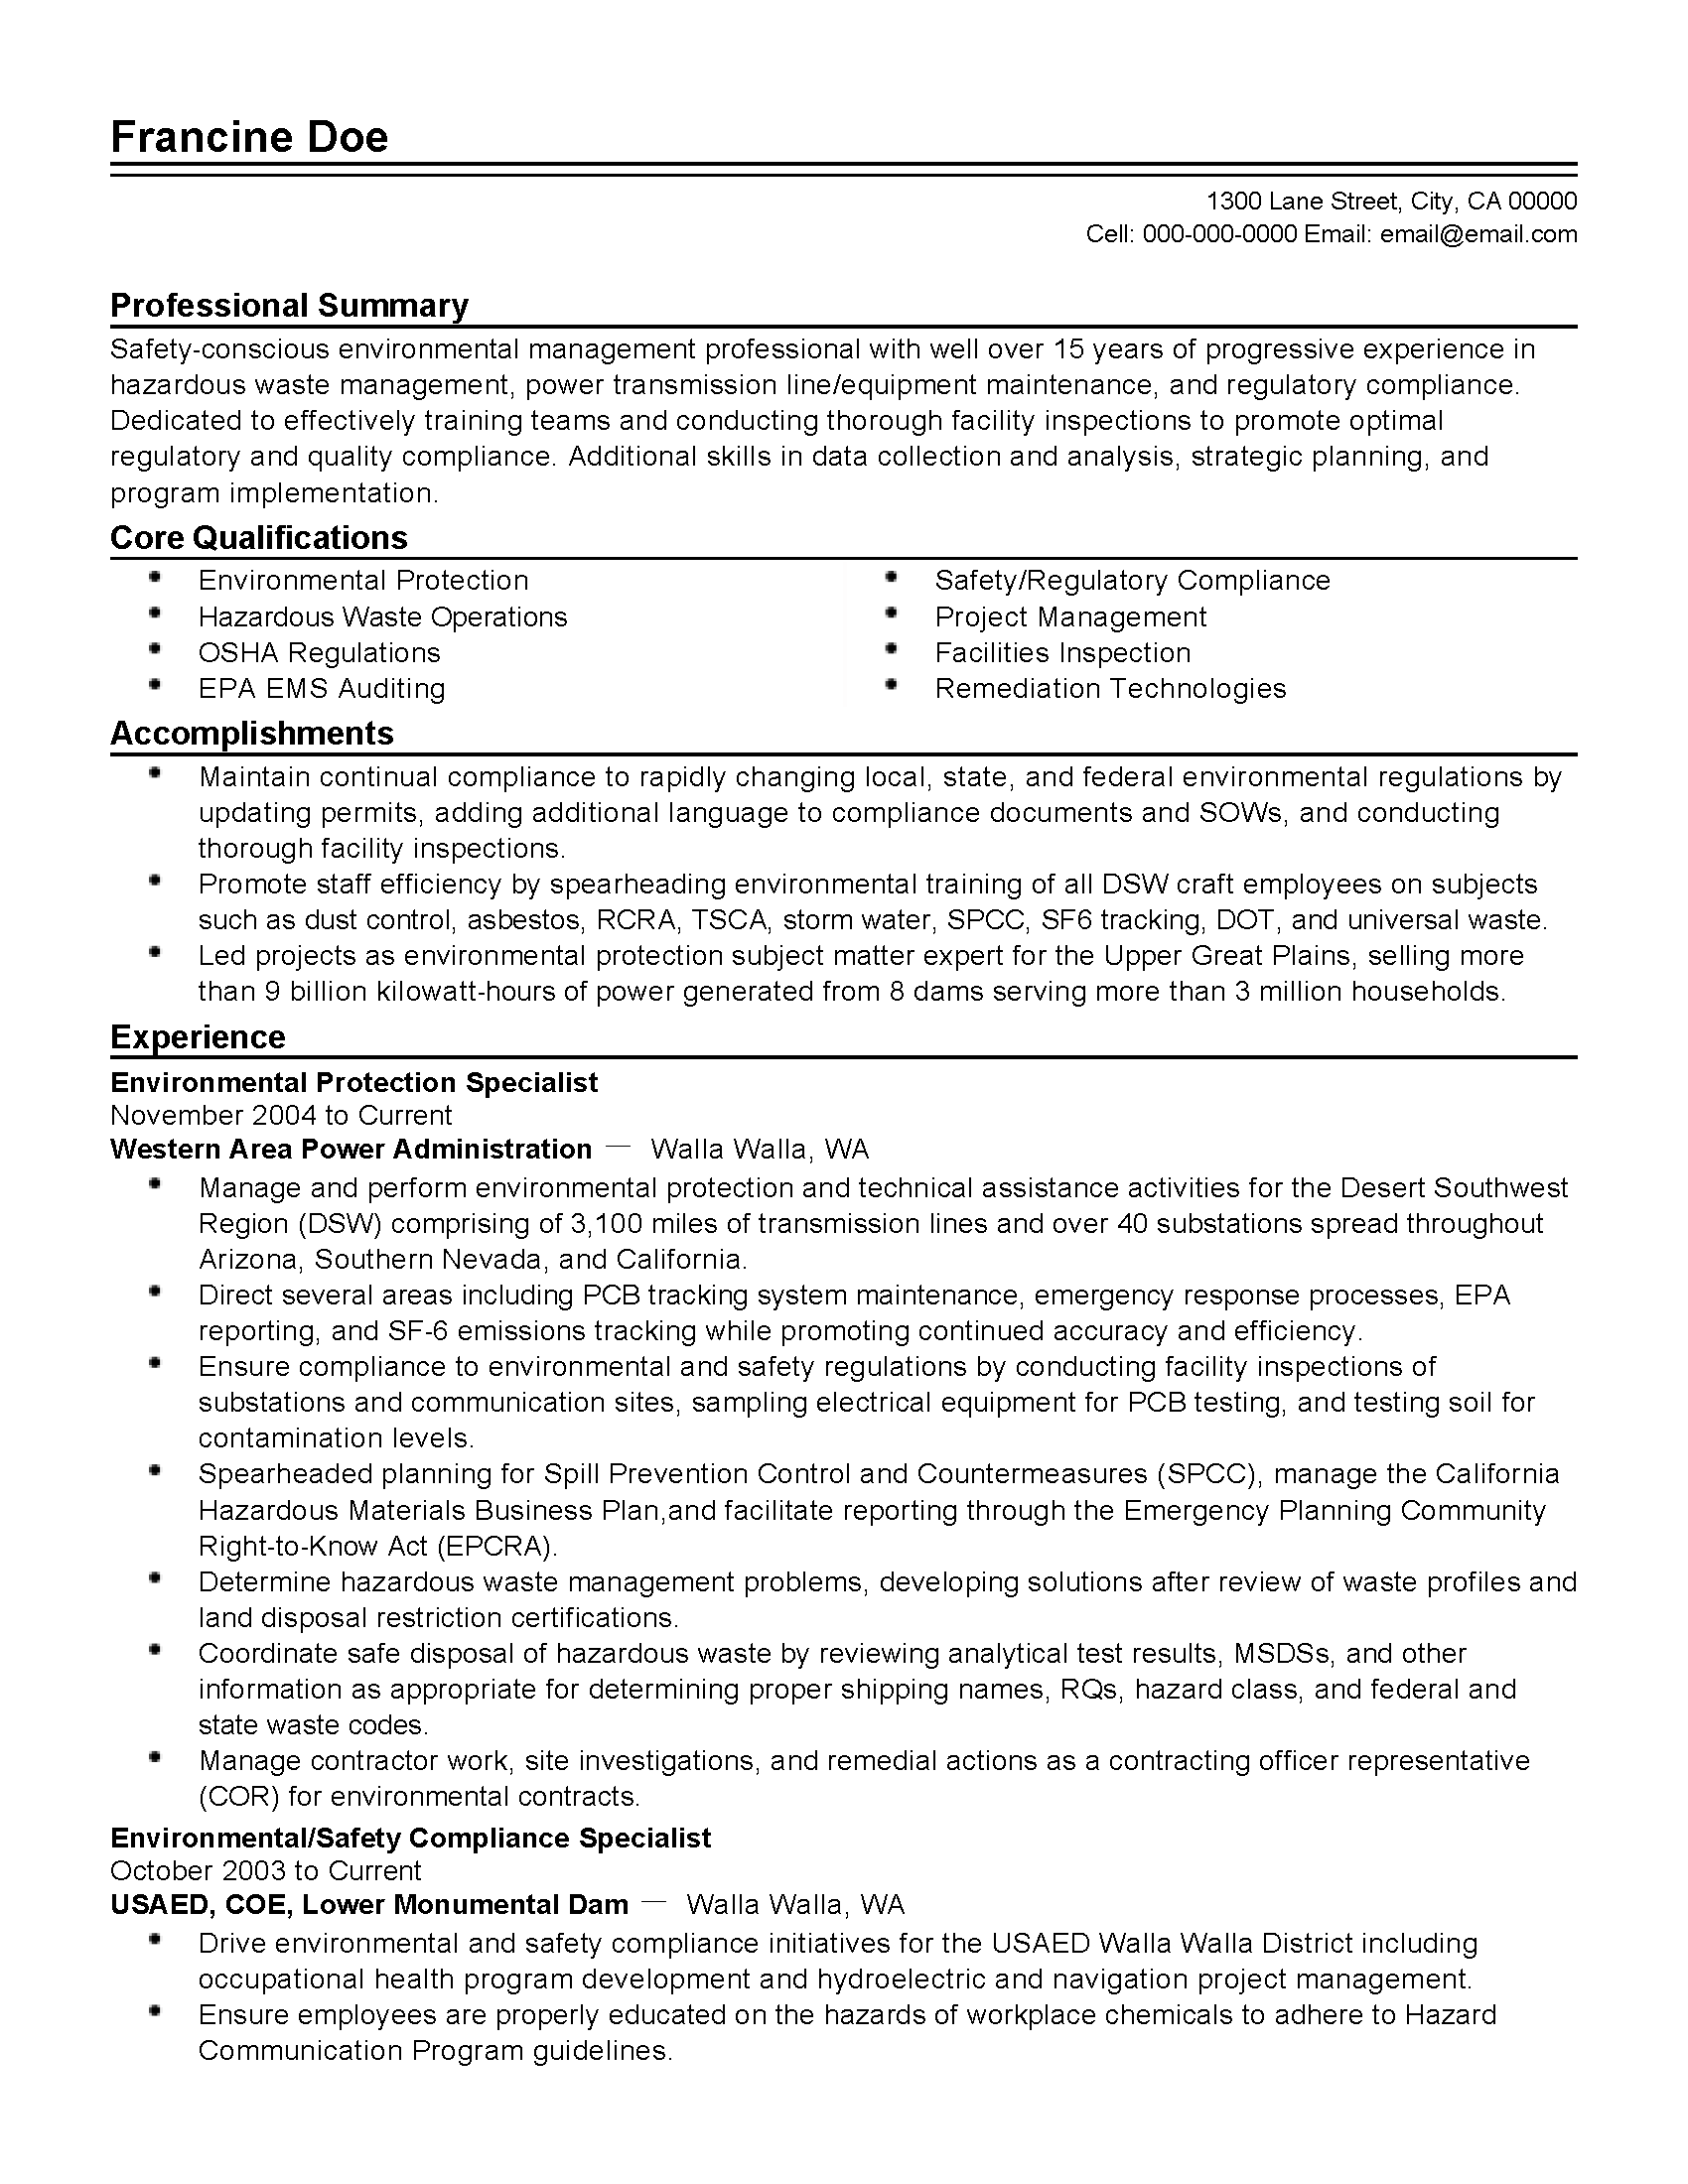 Is Your Resume As Powerful As It Should Be Use This Environmental Protection Specialist Resume Resume Writing Services Cover Letter For Resume Resume Template